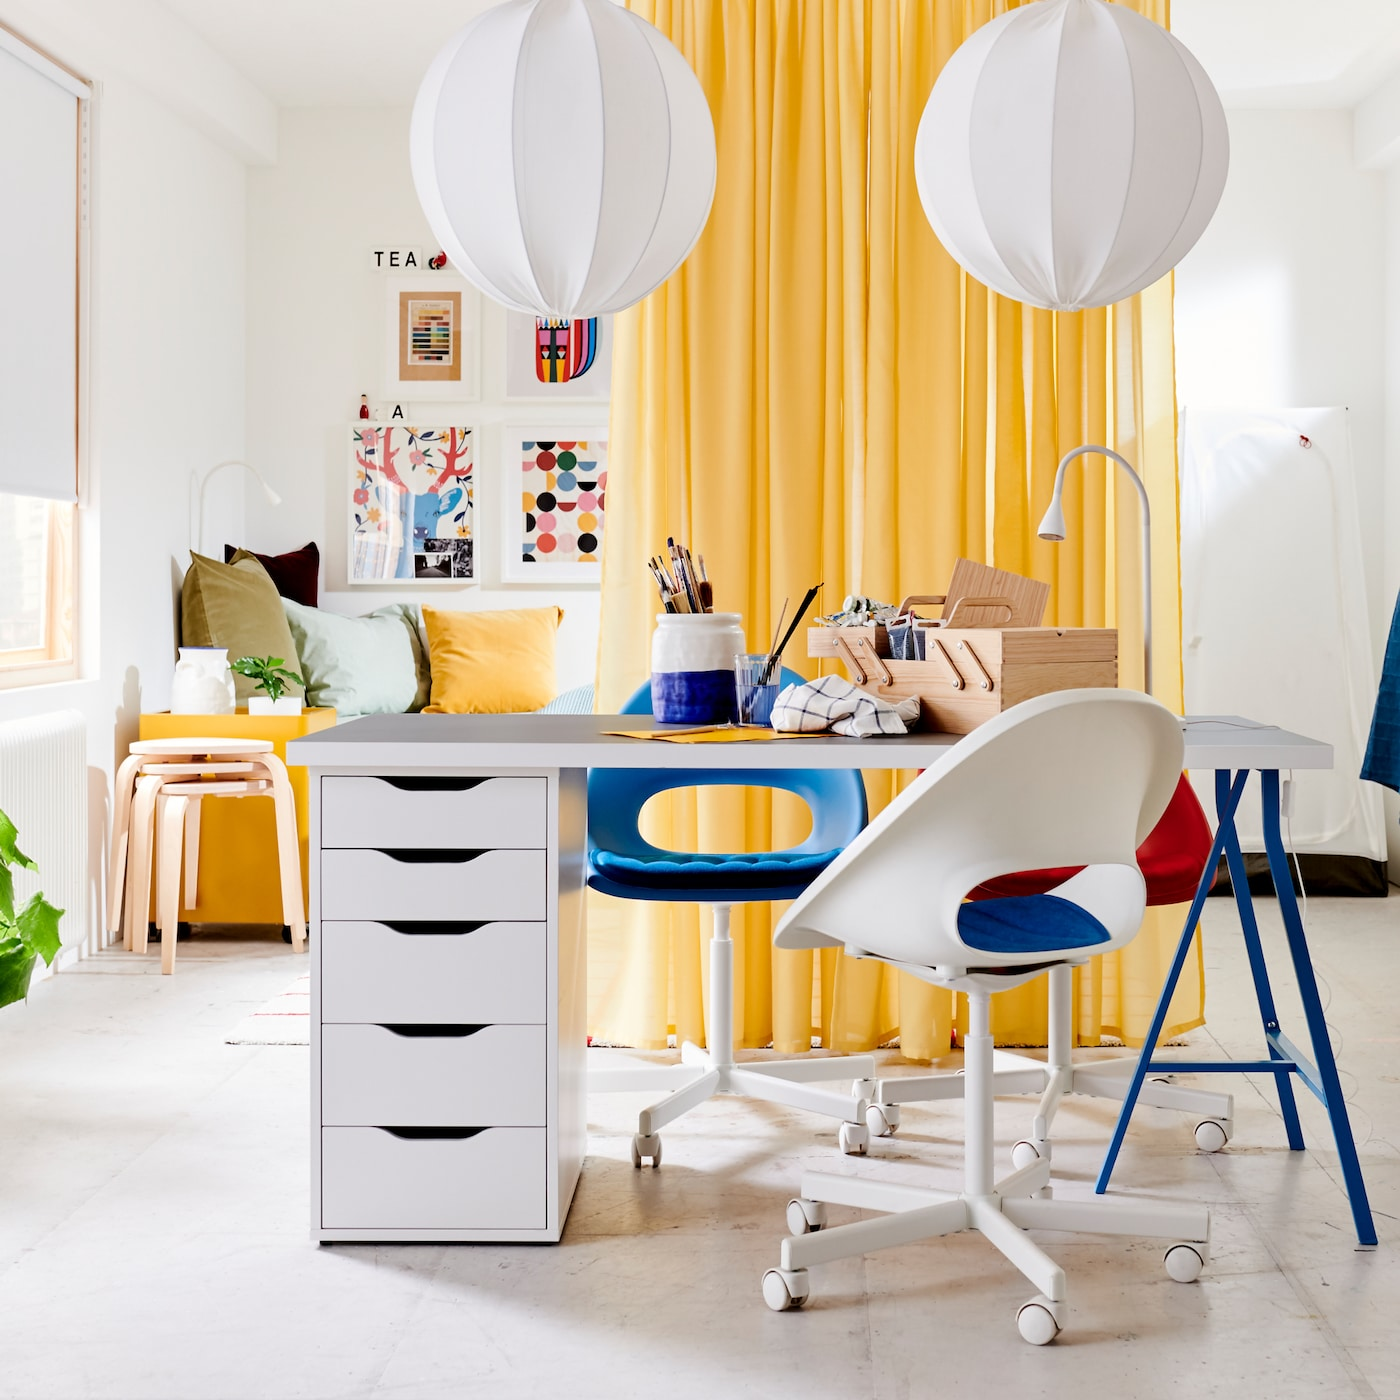 Light grey/white table with blue legs and drawer unit, three white/blue/red swivel chairs and yellow room-dividing curtains.